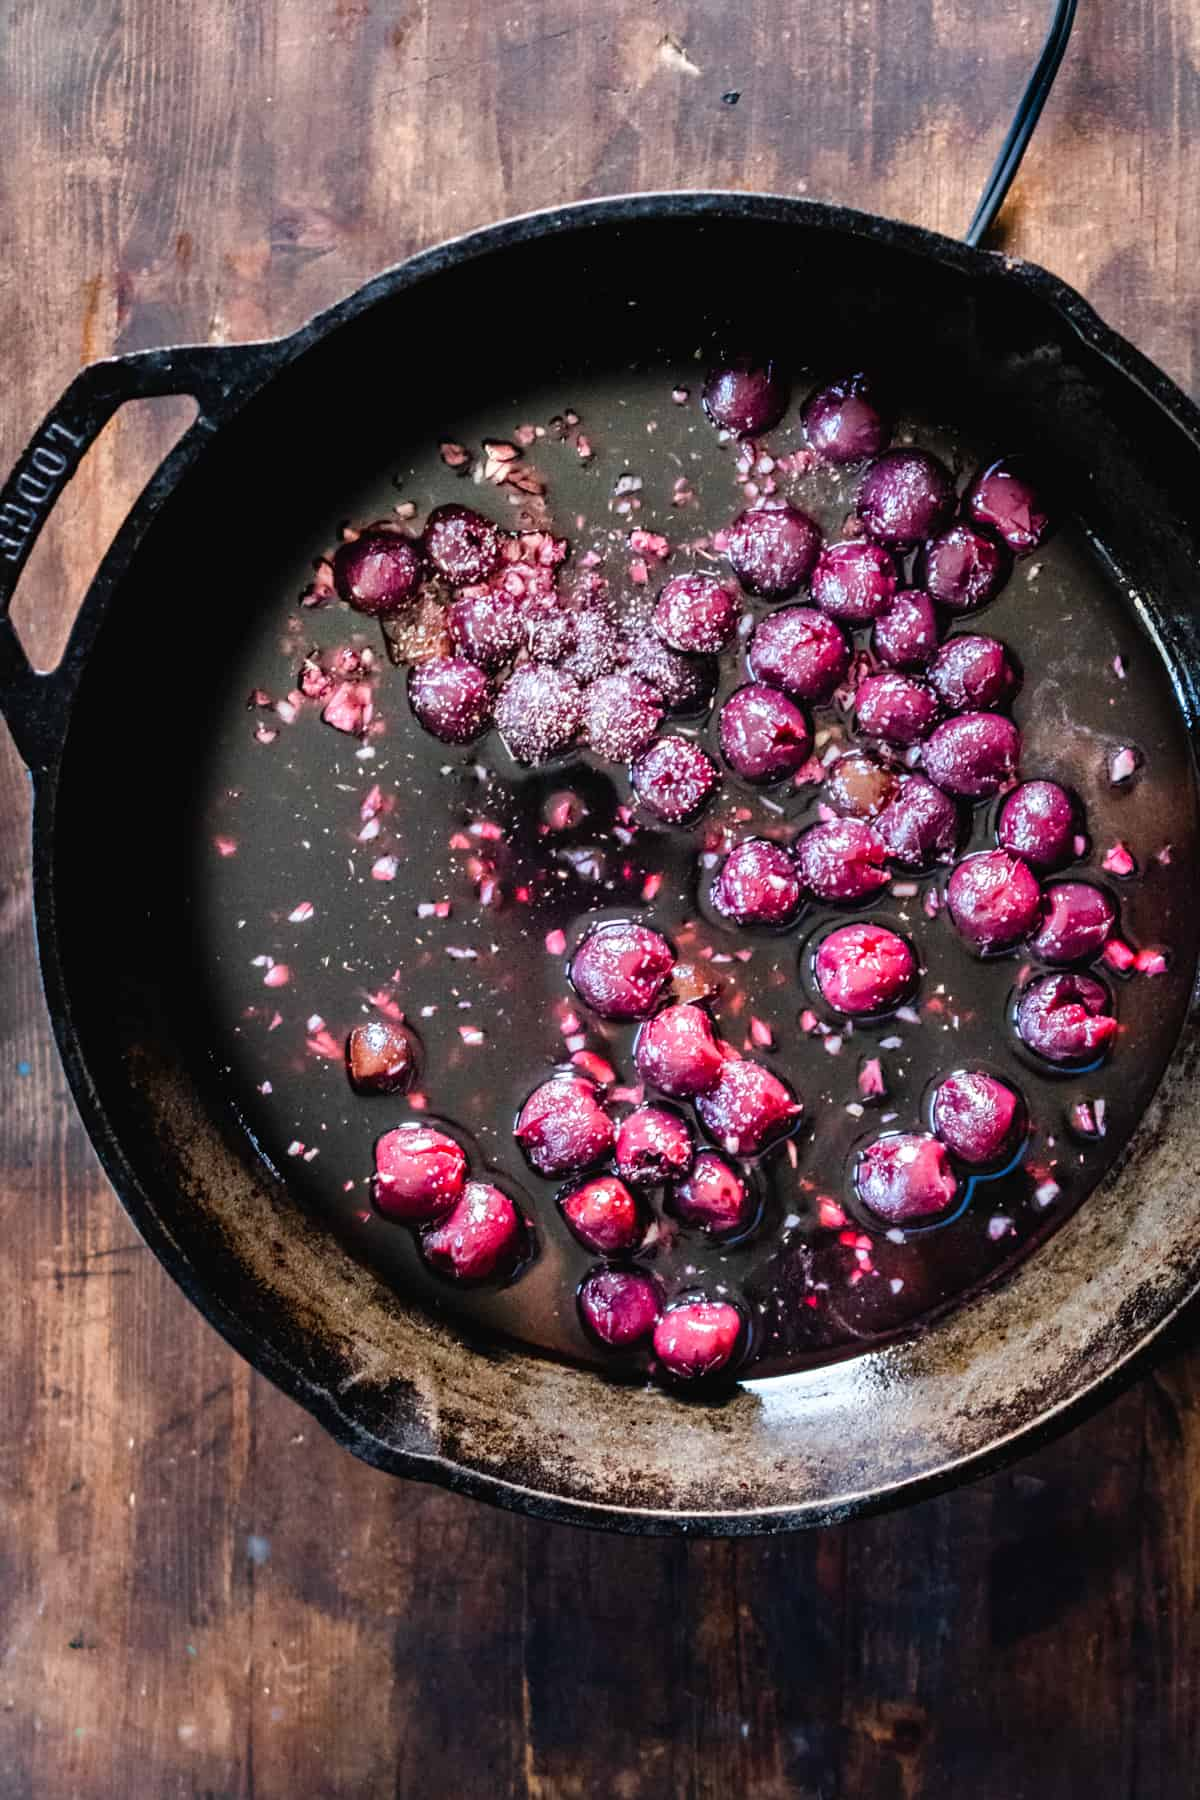 Cast iron skillet with cherries, wine and herbs.